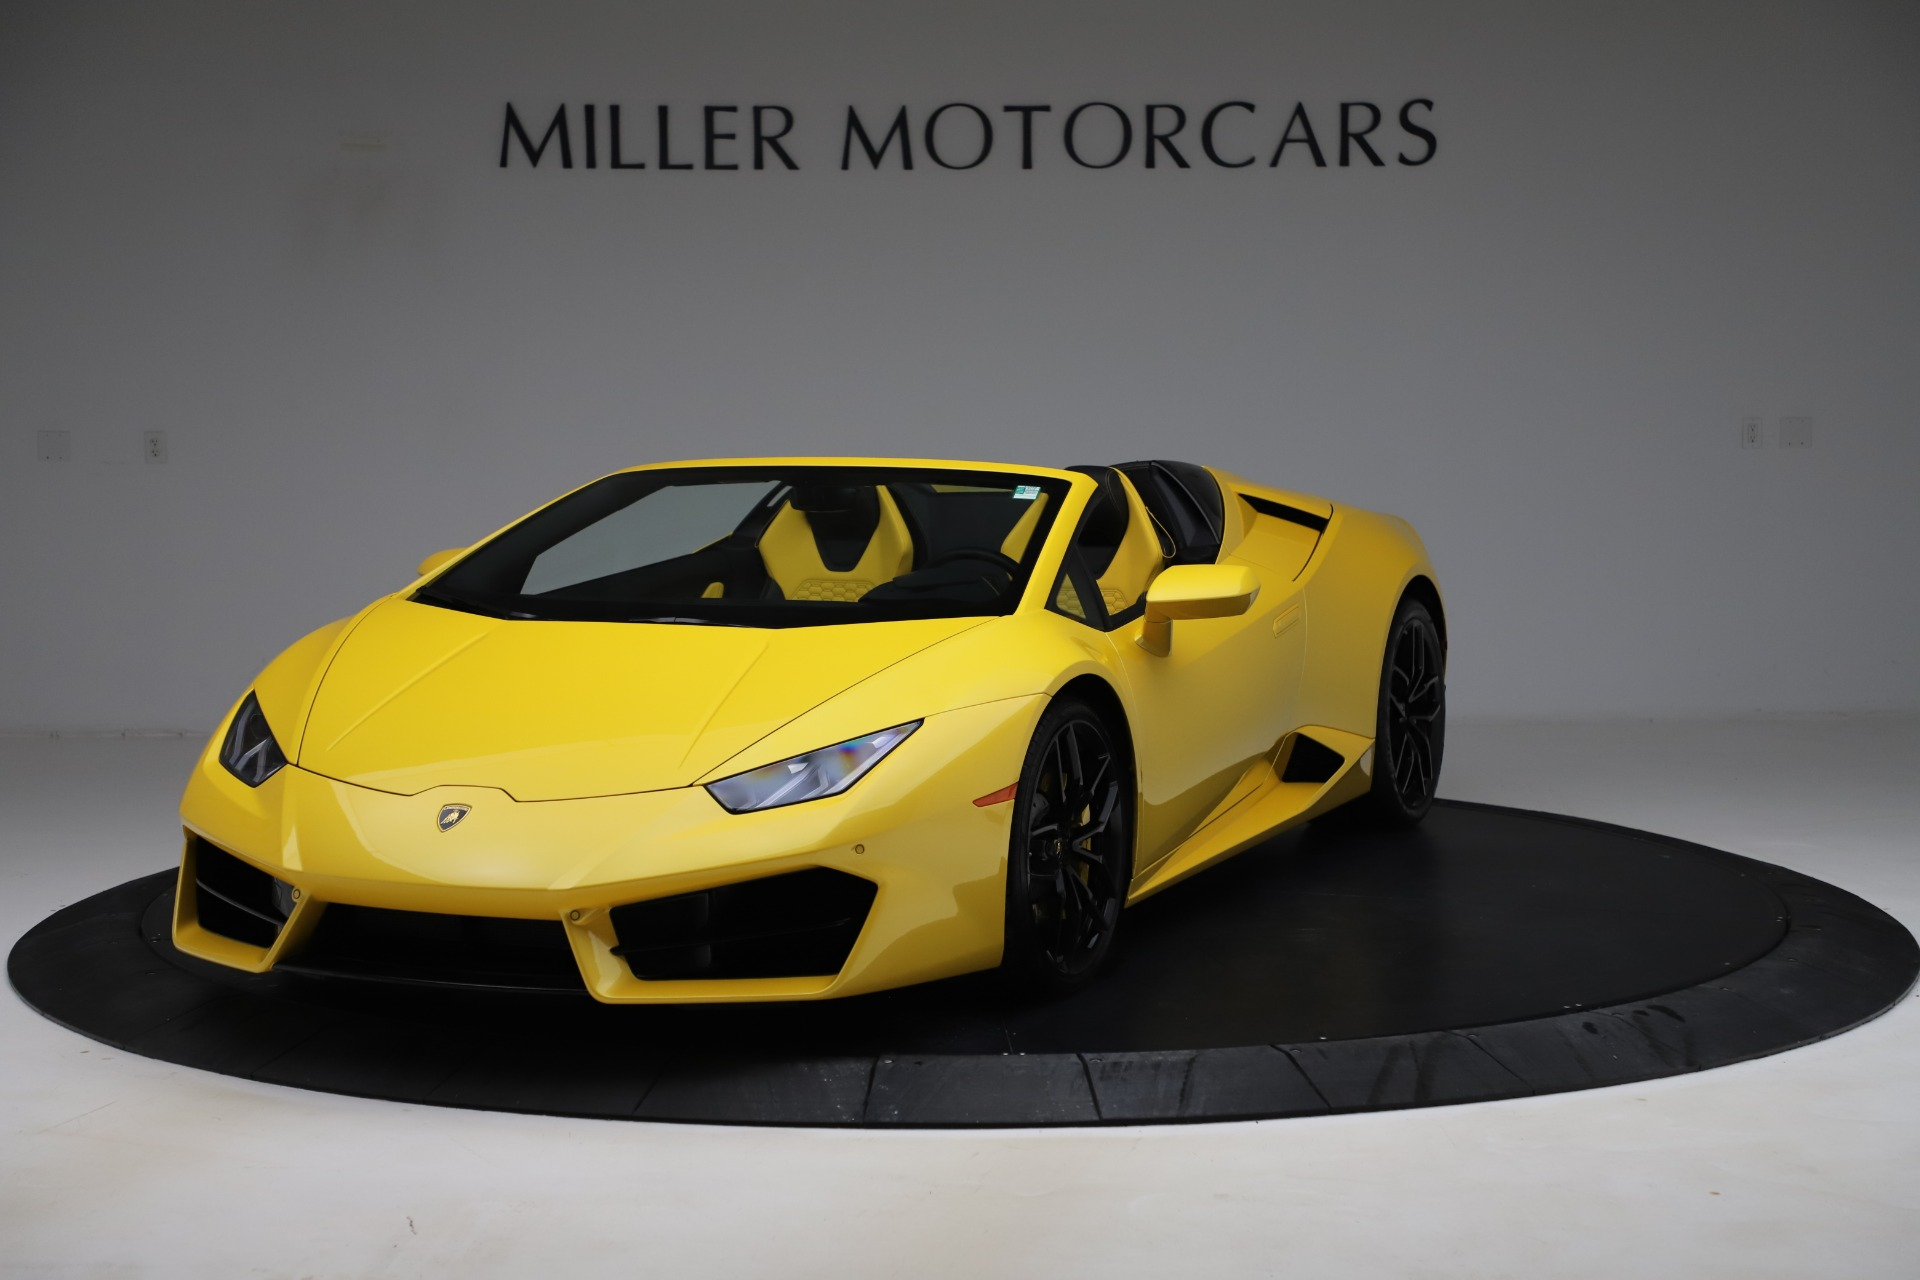 Used 2018 Lamborghini Huracan LP 580-2 Spyder for sale Sold at Alfa Romeo of Greenwich in Greenwich CT 06830 1